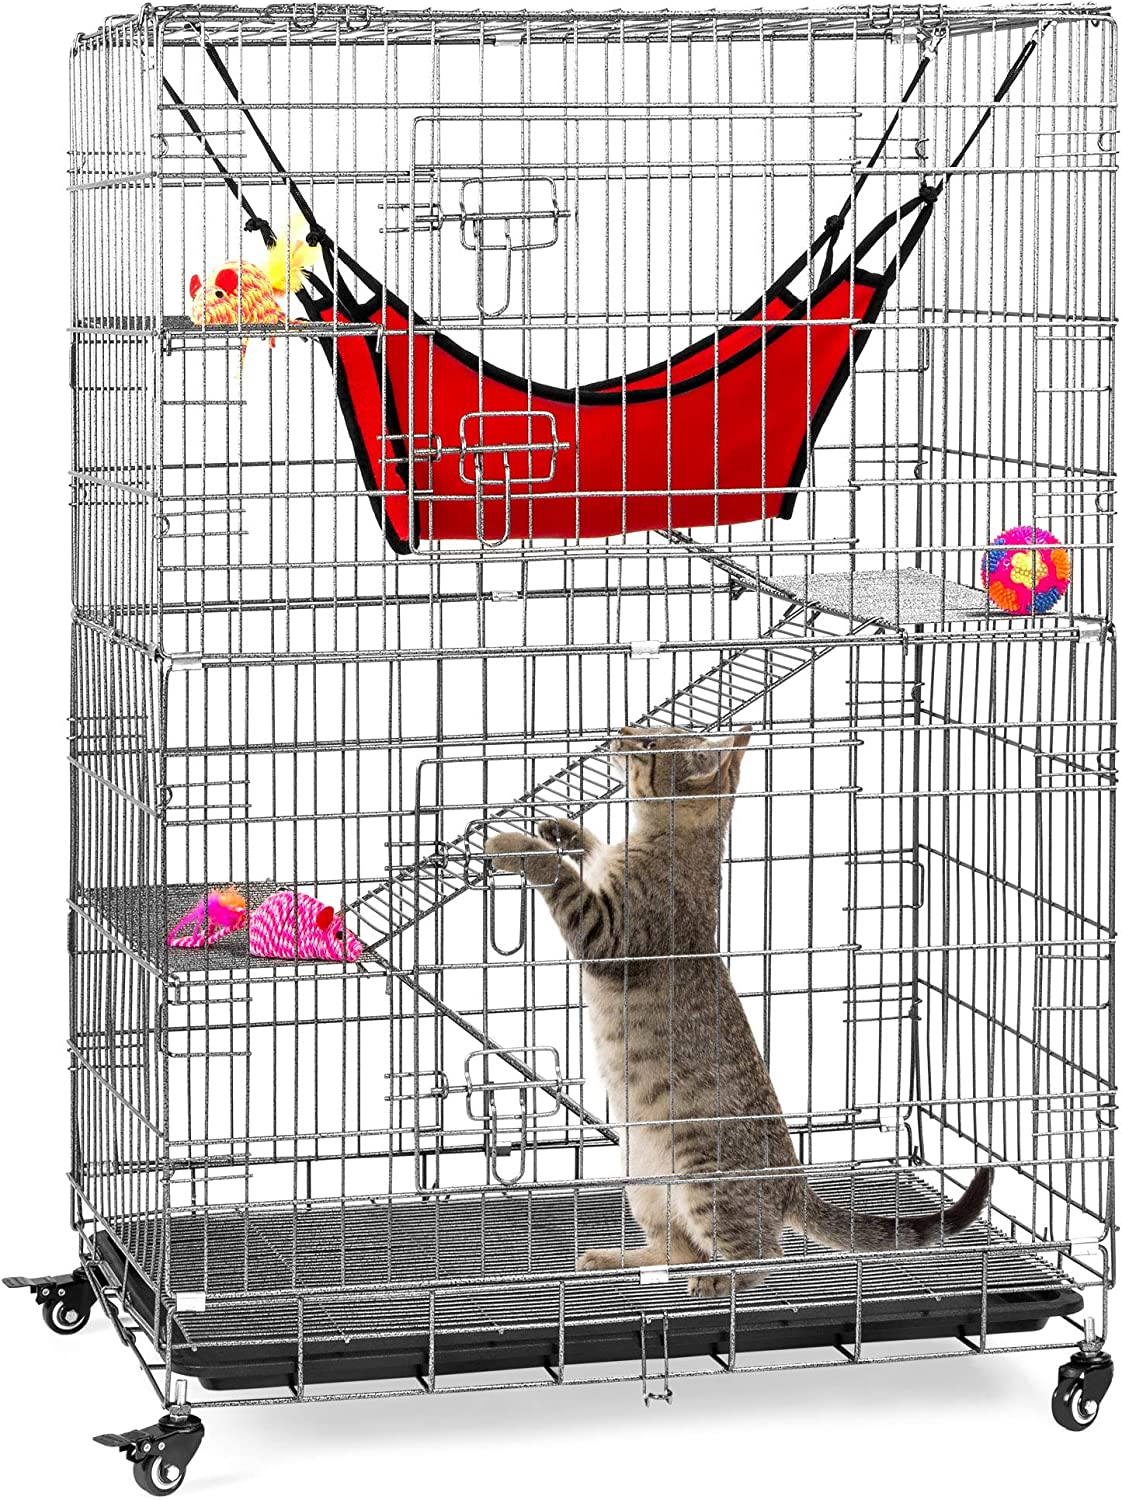 Best Choice Products 30x19x43in 4-Tier Steel Cage Playpen Kennel Crate for Cats and Small Animals w/ Hammock, Rolling Wheels, Adjustable Shelves & Ramps, Removable Tray: Pet Supplies